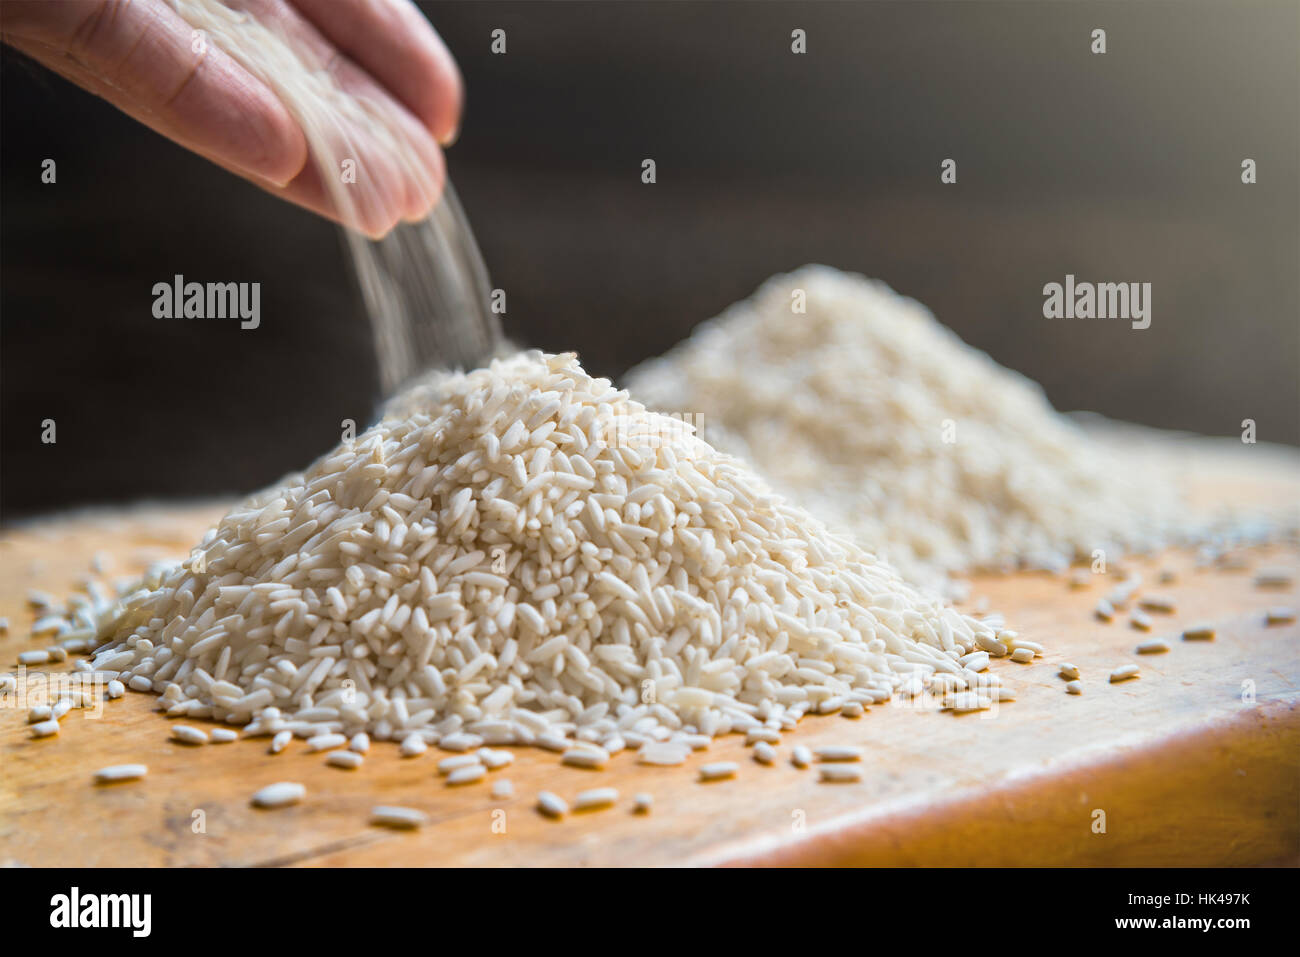 Hand pouring rice on pile of white rice on wooden table background, metaphor ingredient, nutrition, carbohydrate - Stock Image